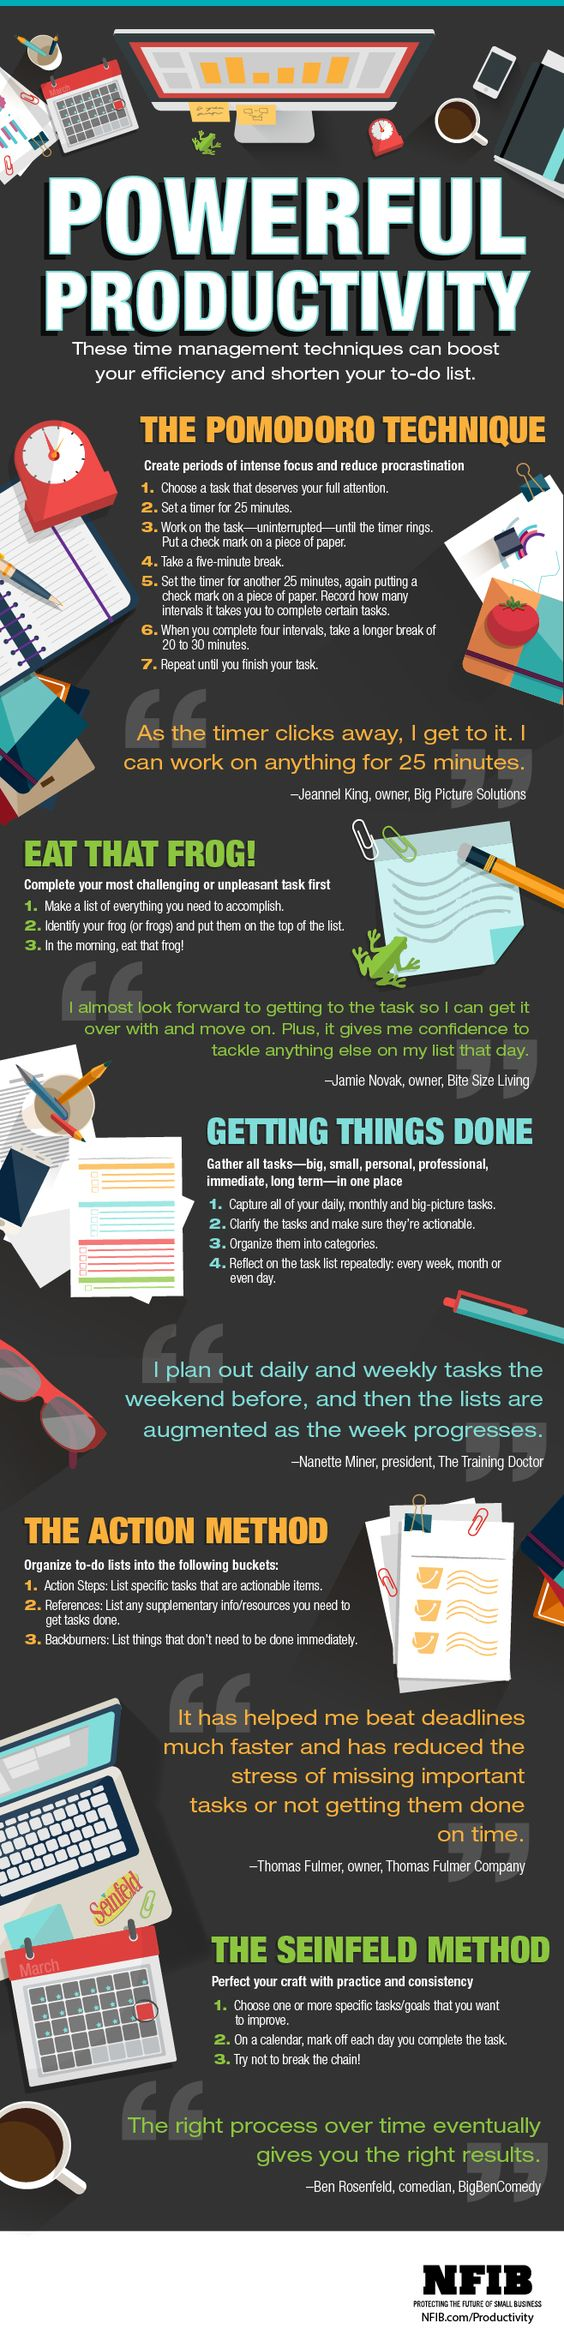 With so many distractions stealing our attention, most of us are looking for ways to be more efficient at work. Some entrepreneurs want higher work efficiency because they want to make time for more projects and additional opportunities. Others may...